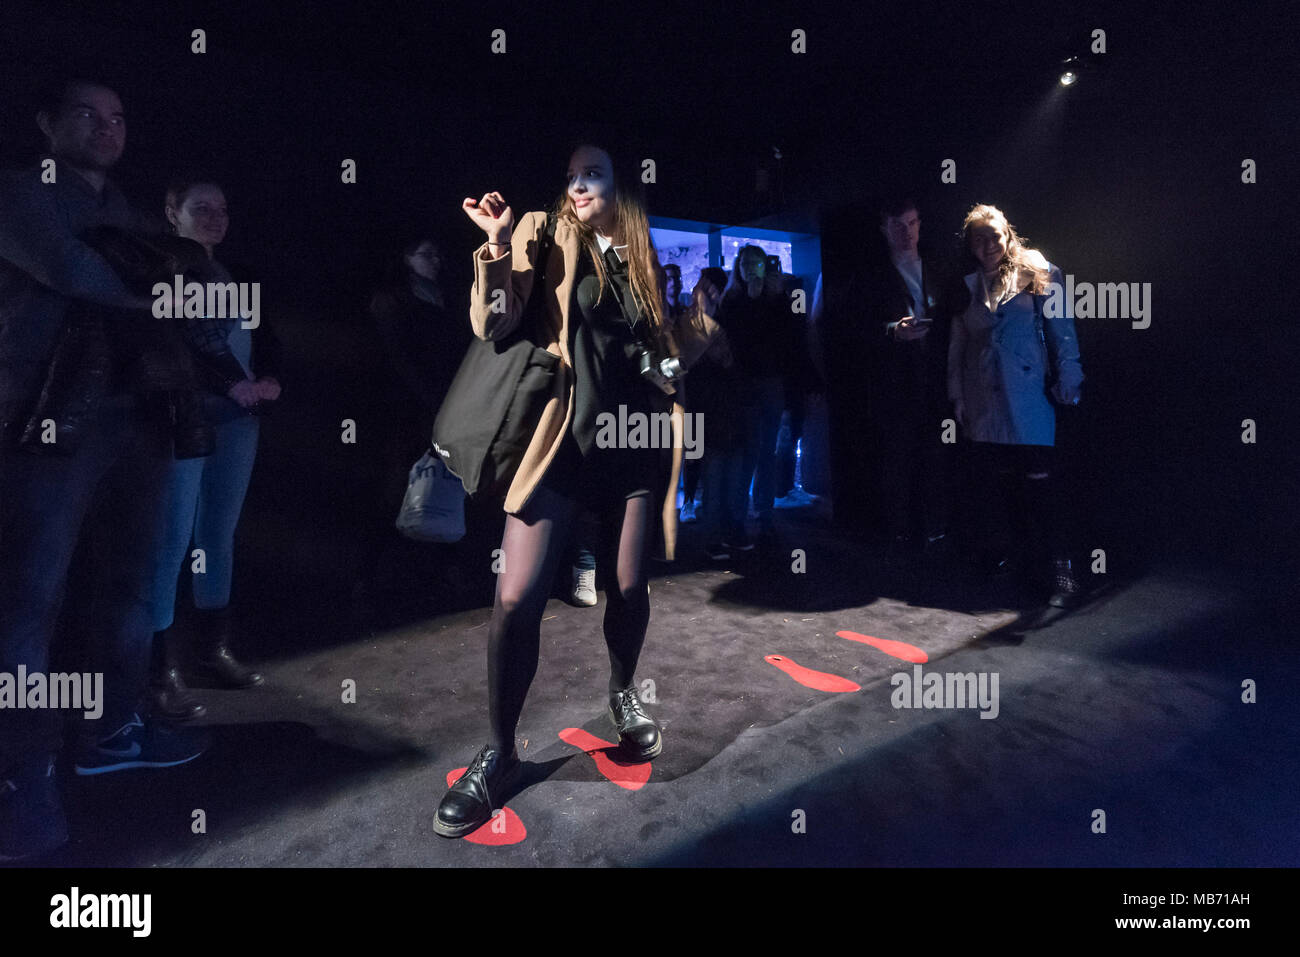 London, UK. 7 April 2018. A woman dances in The Motion Box, a blacked-out space using gesture recognition technology to translate movements into an array of colour and light at 'Sense of Space' an art pop-up which has opened to the public in Broadgate.  Comprising four rooms to challenge the visitor's sensory perceptions through art, the installation is open until 18 May.  Credit: Stephen Chung / Alamy Live News - Stock Image